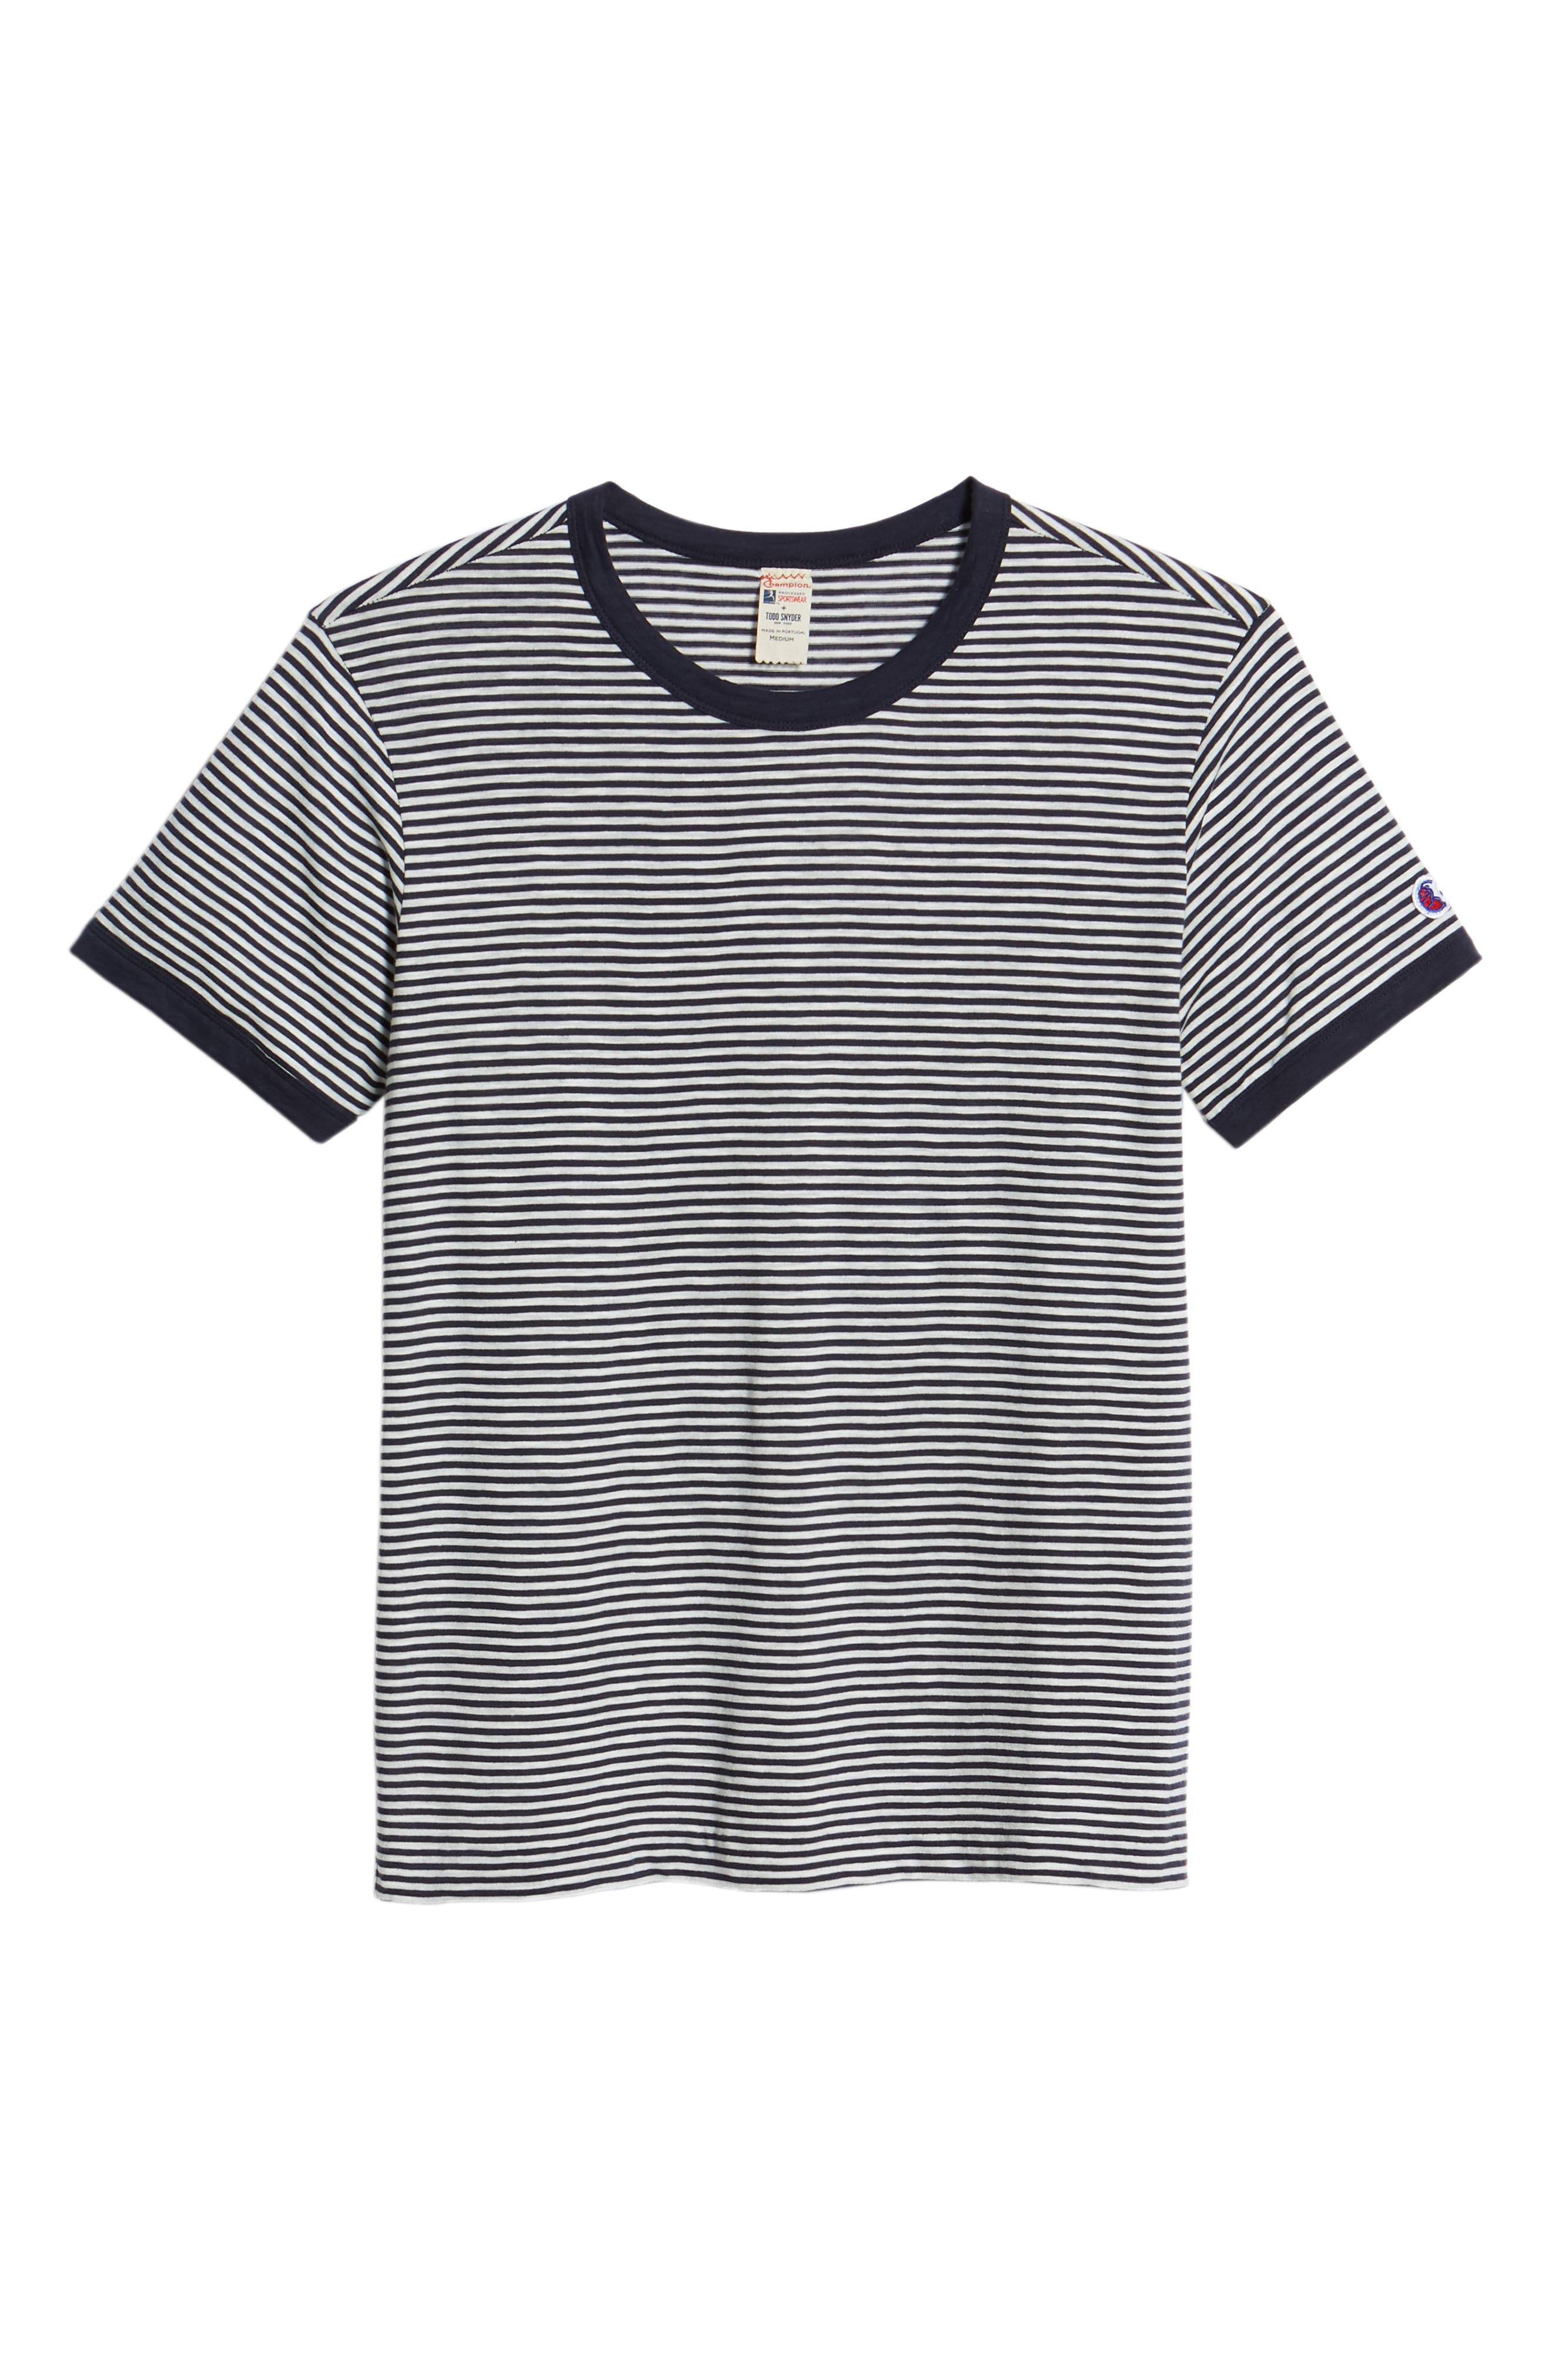 TODD SNYDER,                             + Champion Stripe T-Shirt,                             Alternate thumbnail 6, color,                             410